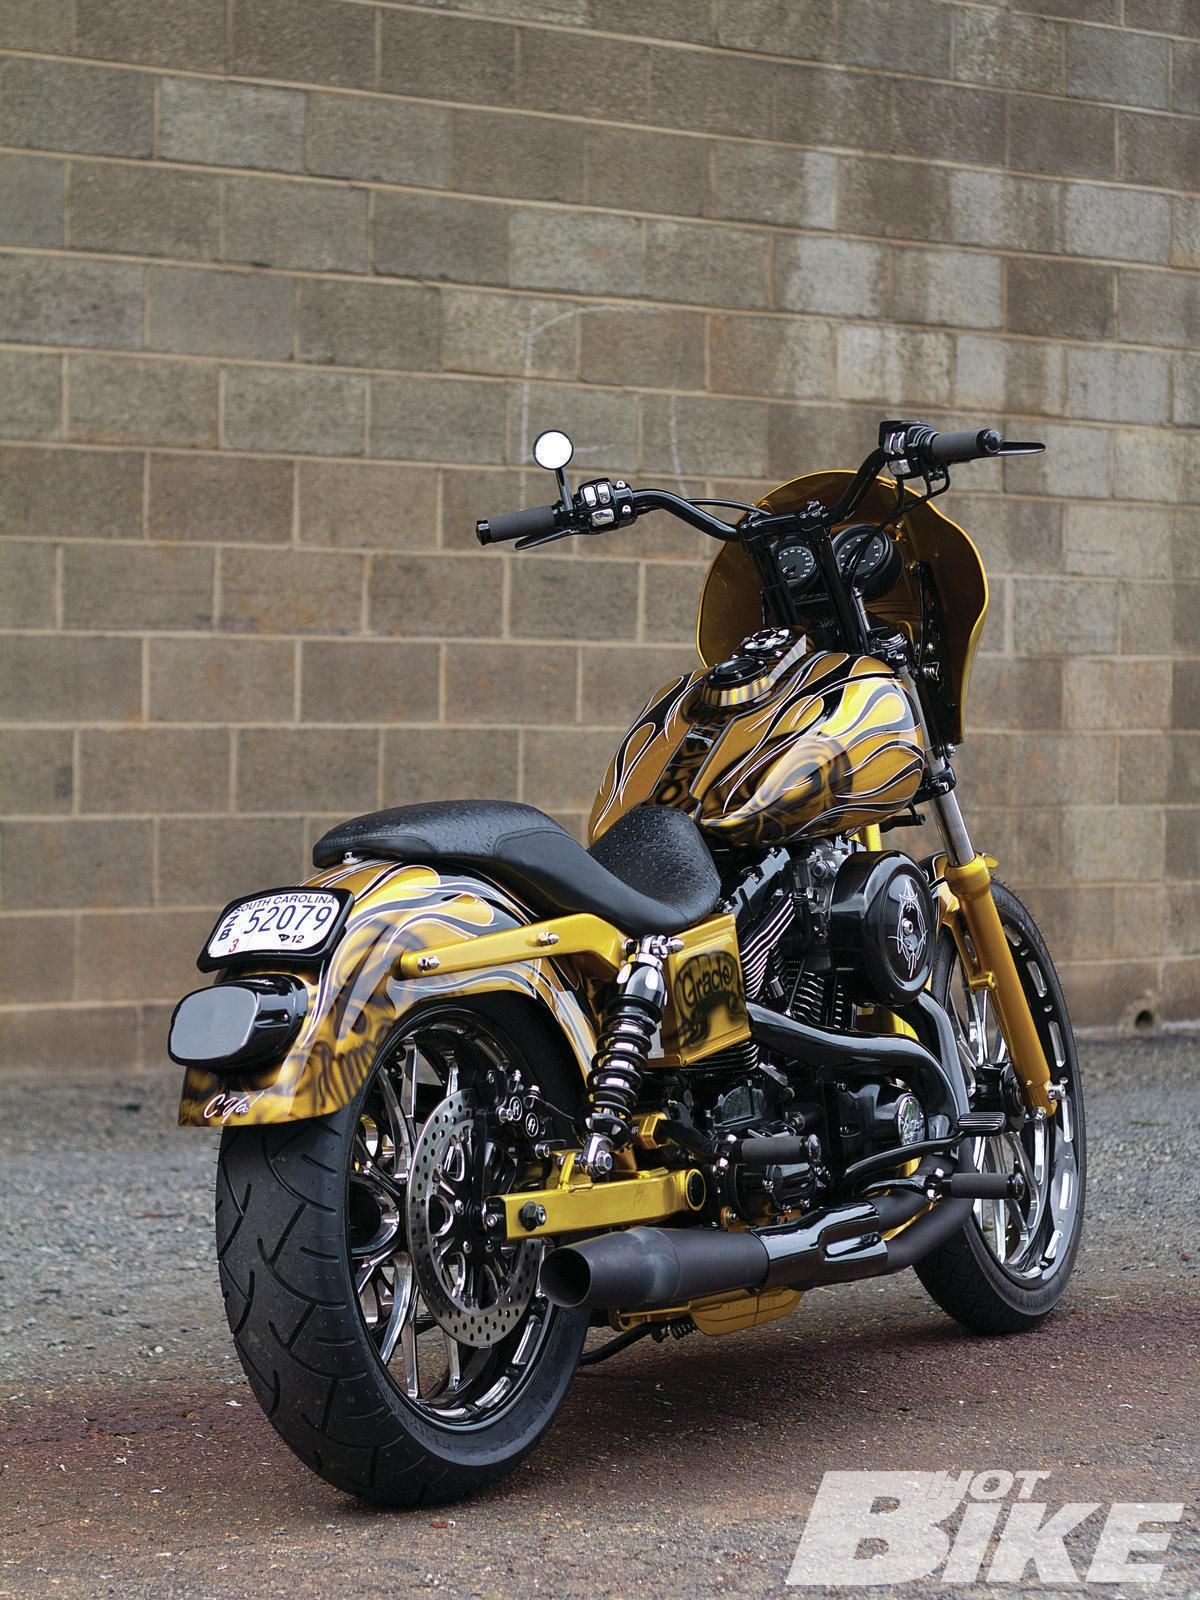 Intervention Dyna super glide, Harley davidson dyna